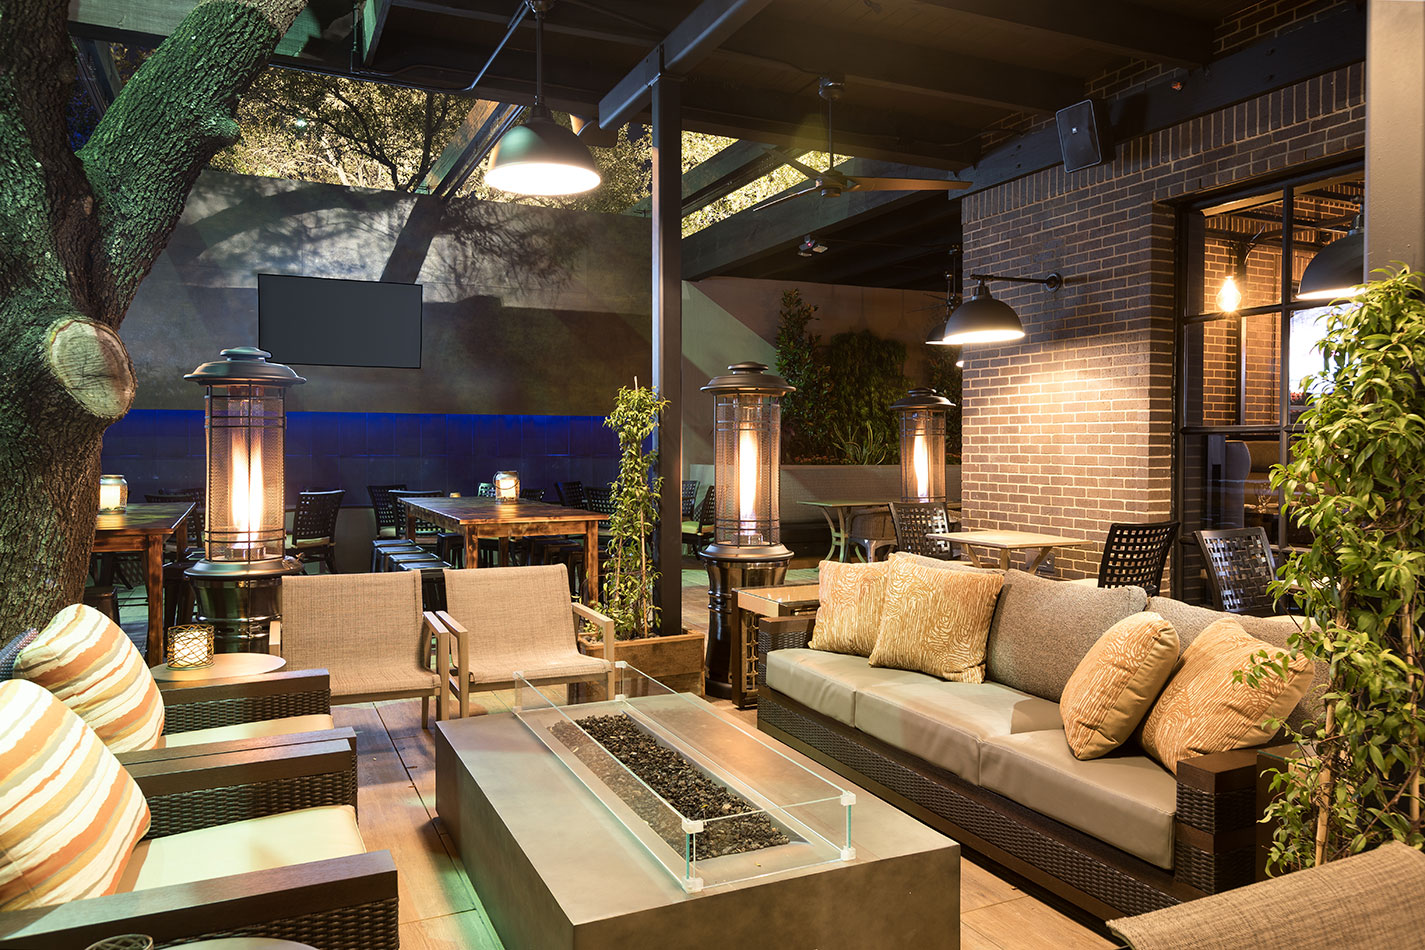 WILLIE G'S HOUSTON Hospitality Restaurant Interior Design Patio Outdoor Seating